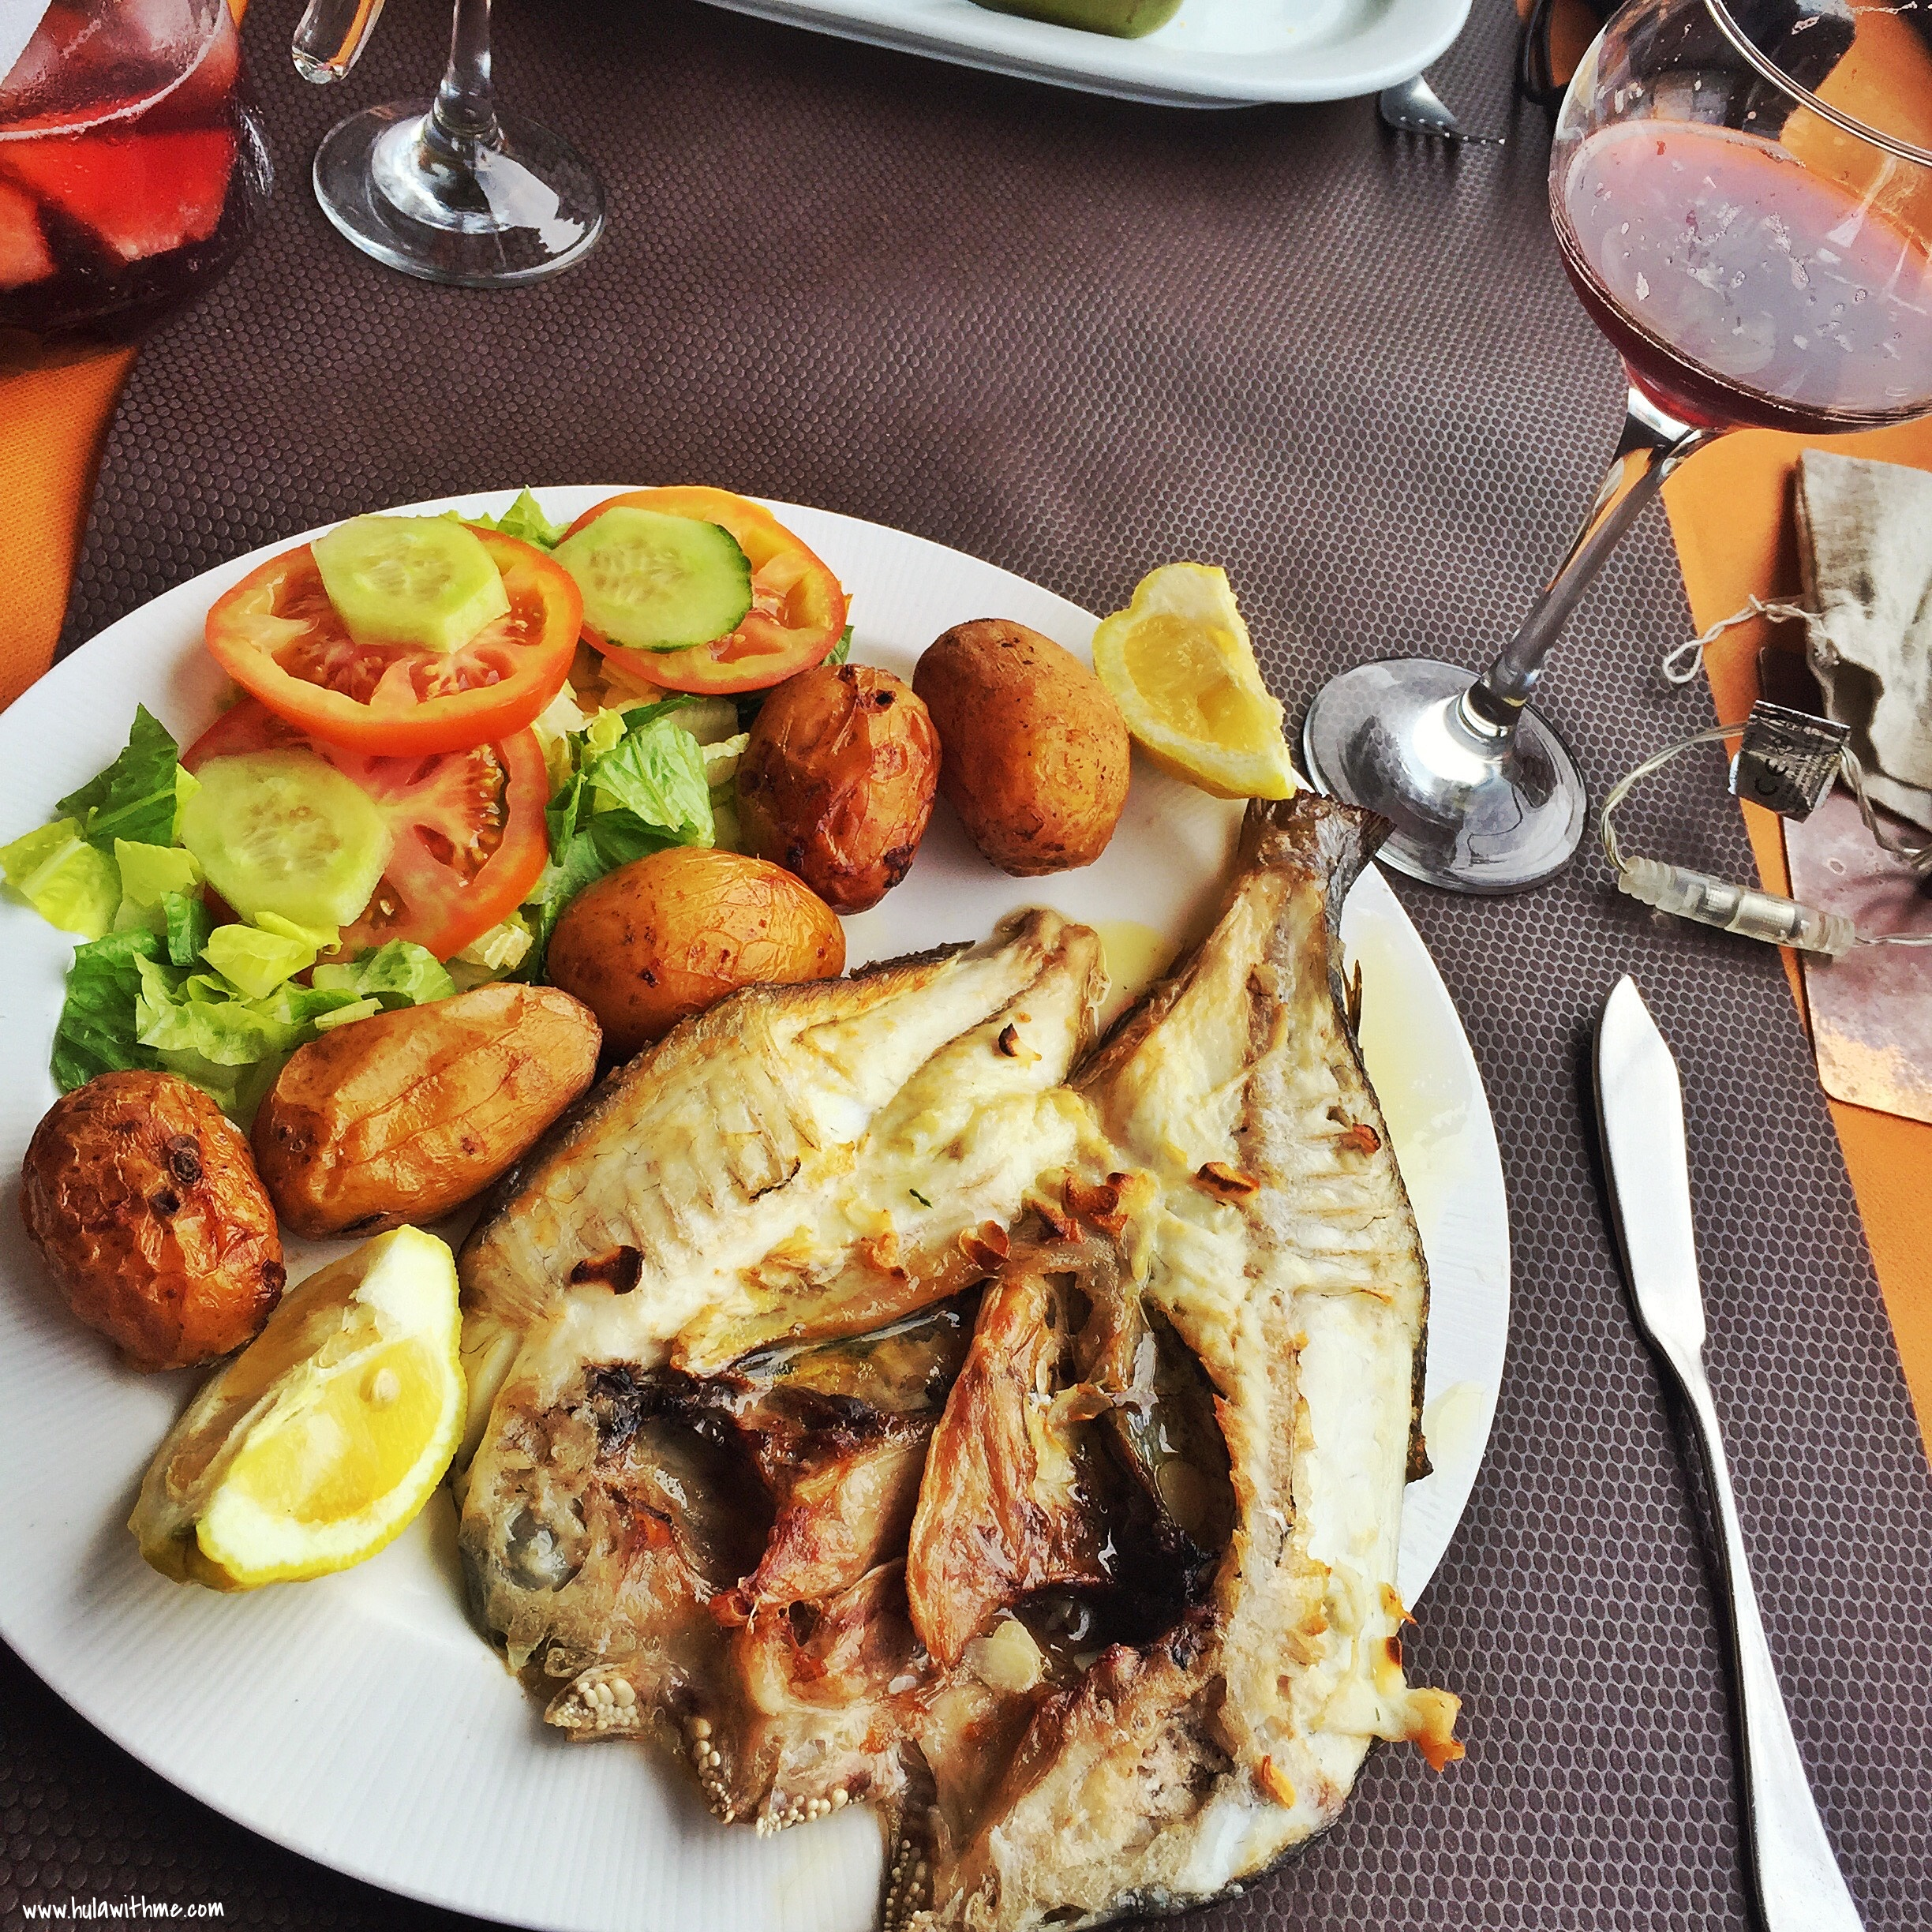 Canary Islands Food Finds - O'Fado Portuguese Restaurant. Grilled fresh fish seasoned with olive oil; Canarian wrinkly potatoes side dish; a glass of sangria.